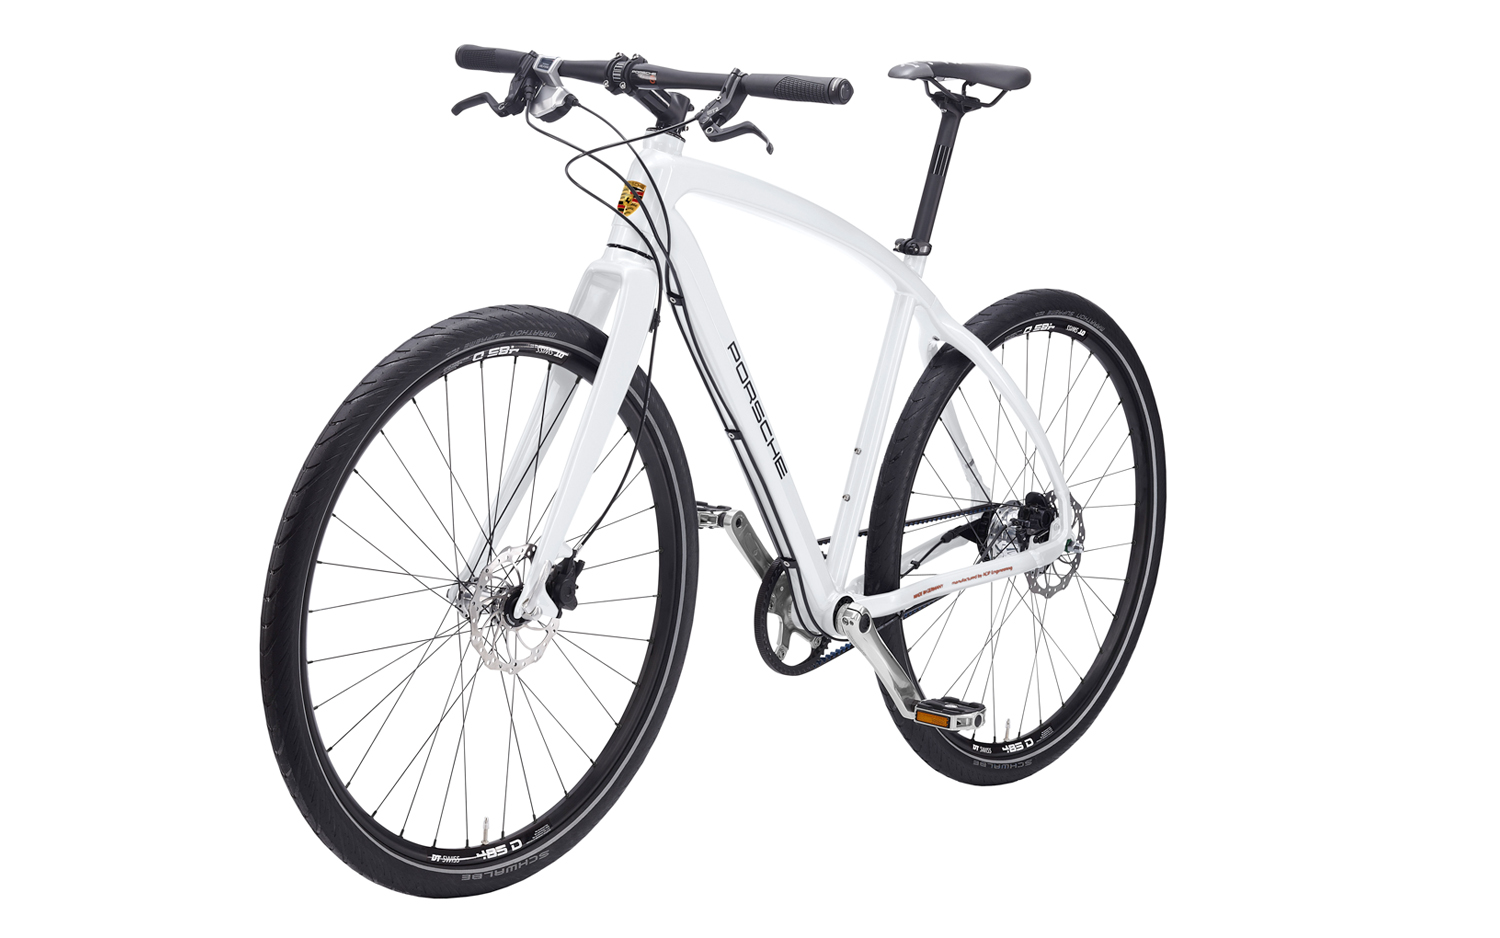 Hybrid Bicycles The Latest Hybrid Bicycles From Porsche Bike S And Bike Rs